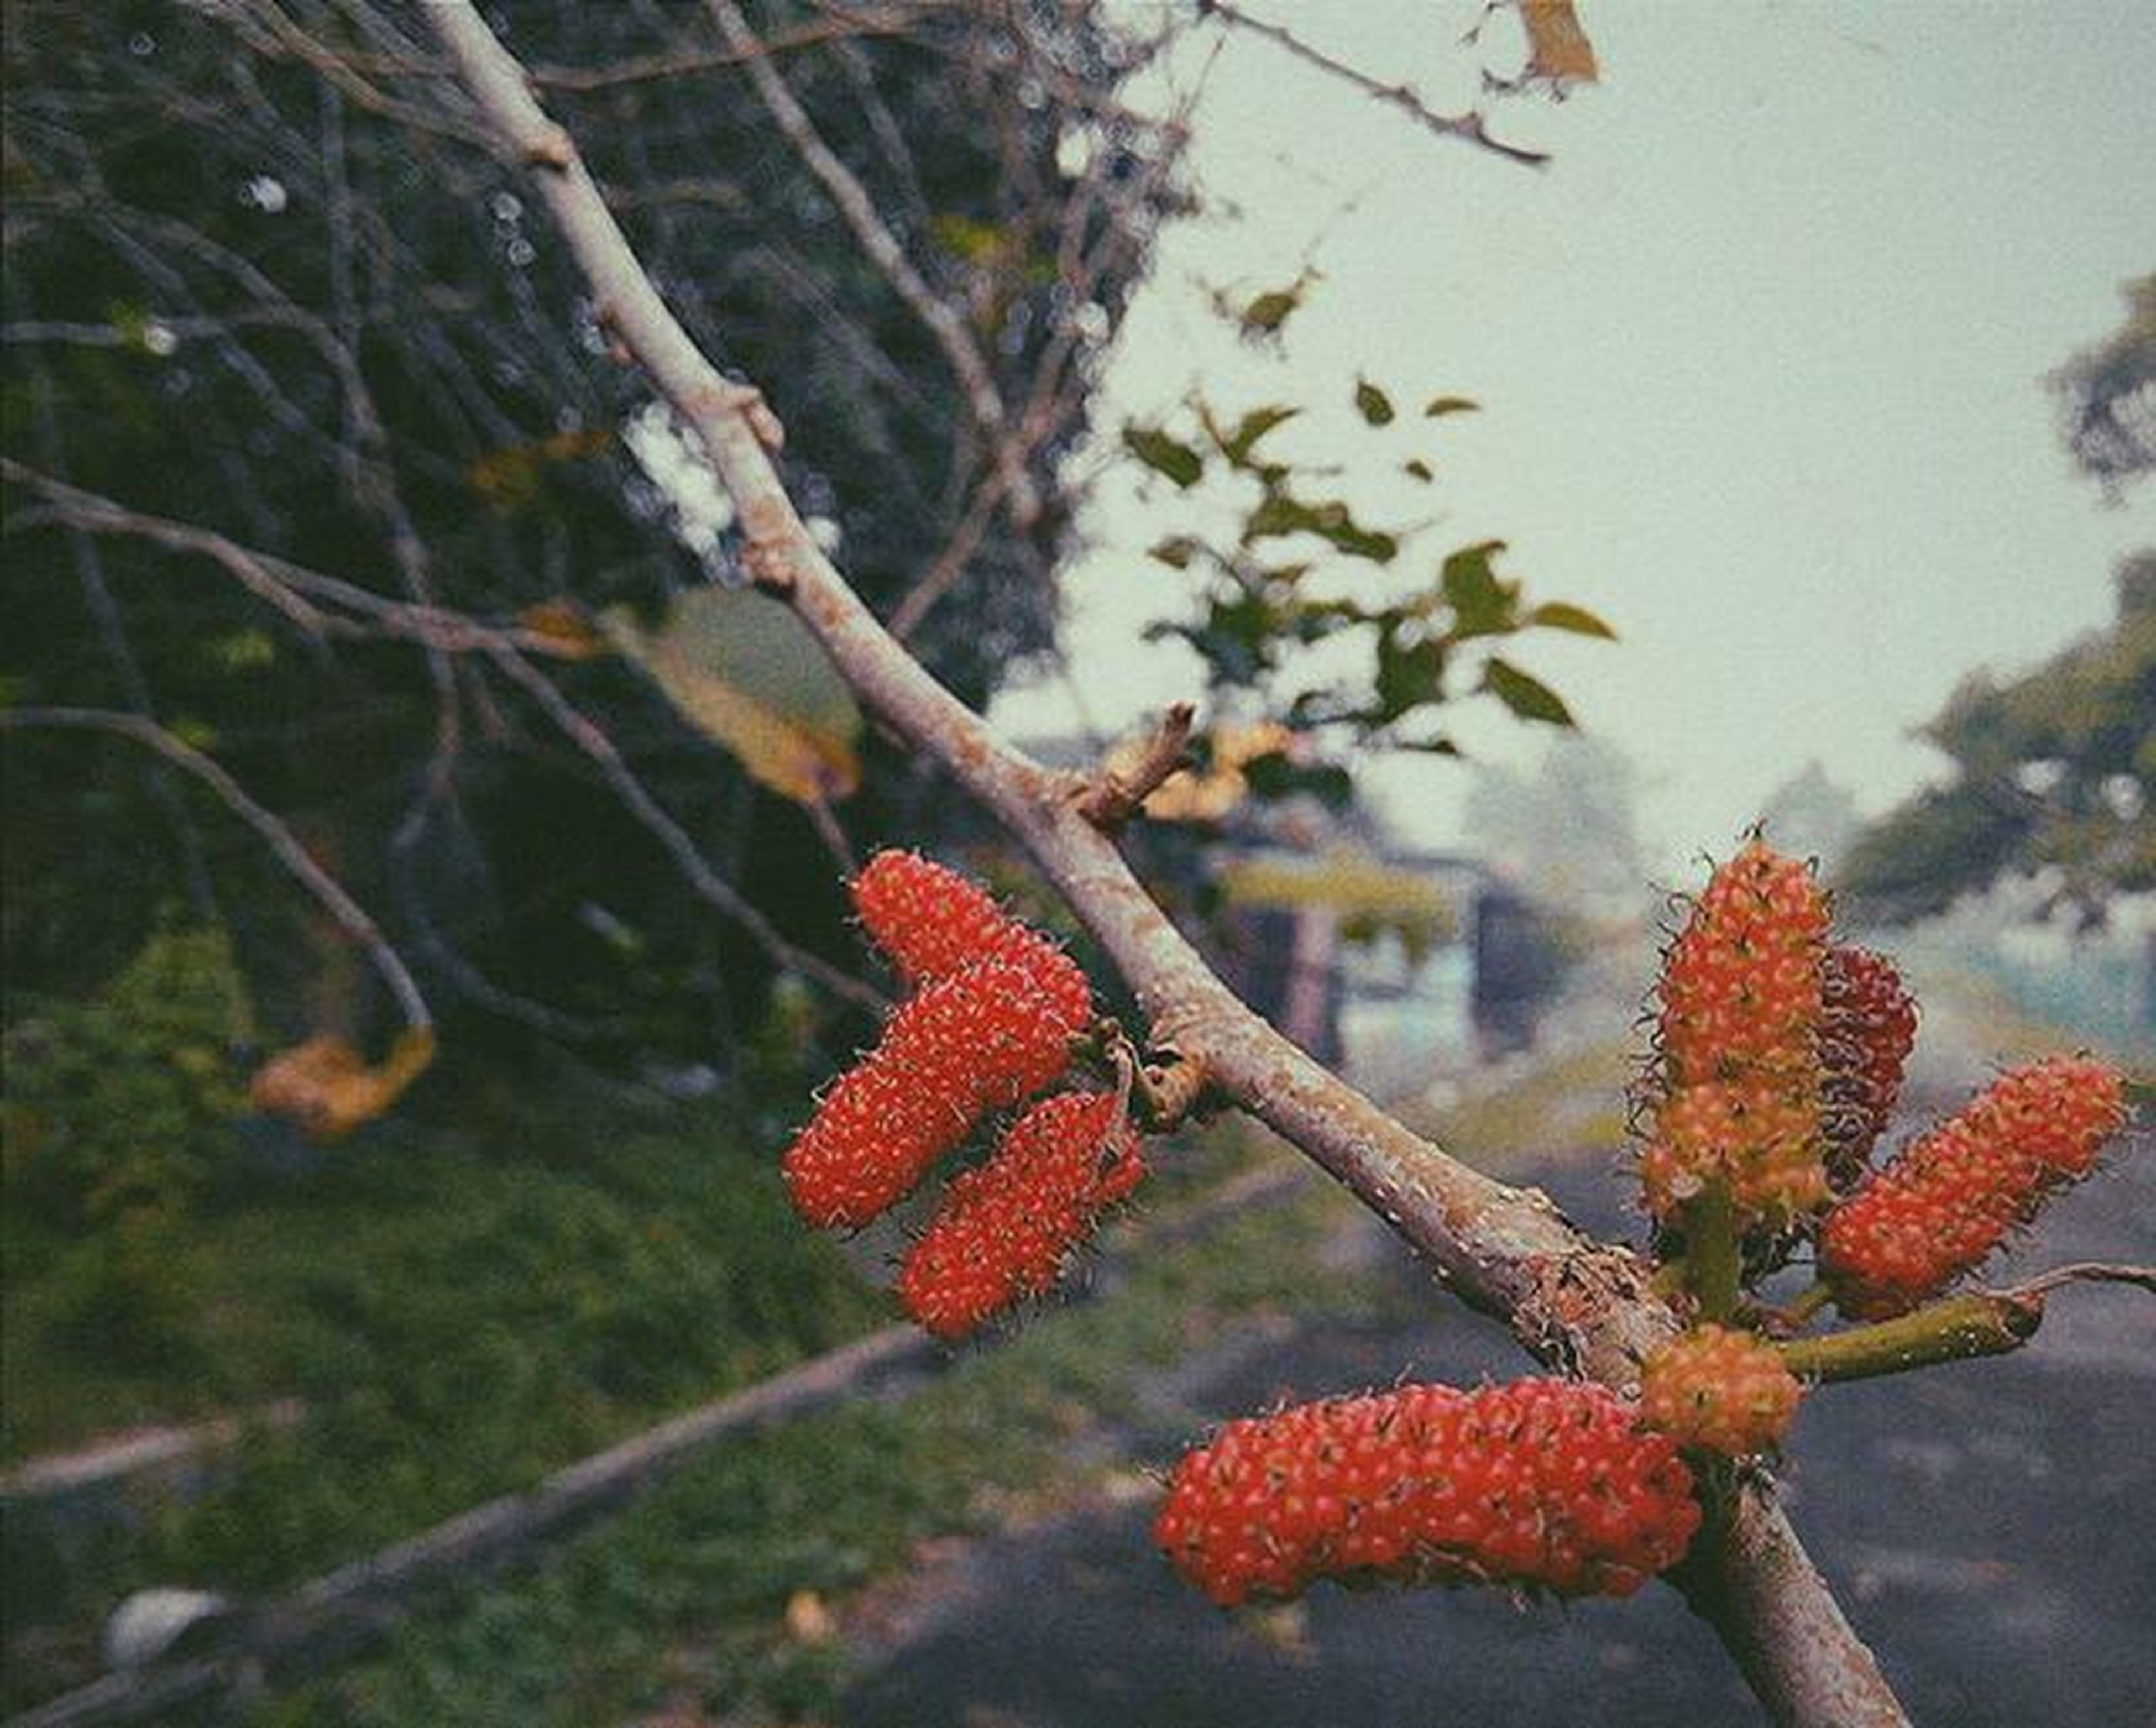 red, flower, growth, focus on foreground, branch, freshness, tree, close-up, nature, beauty in nature, fragility, plant, season, orange color, stem, tranquility, day, outdoors, no people, flower head